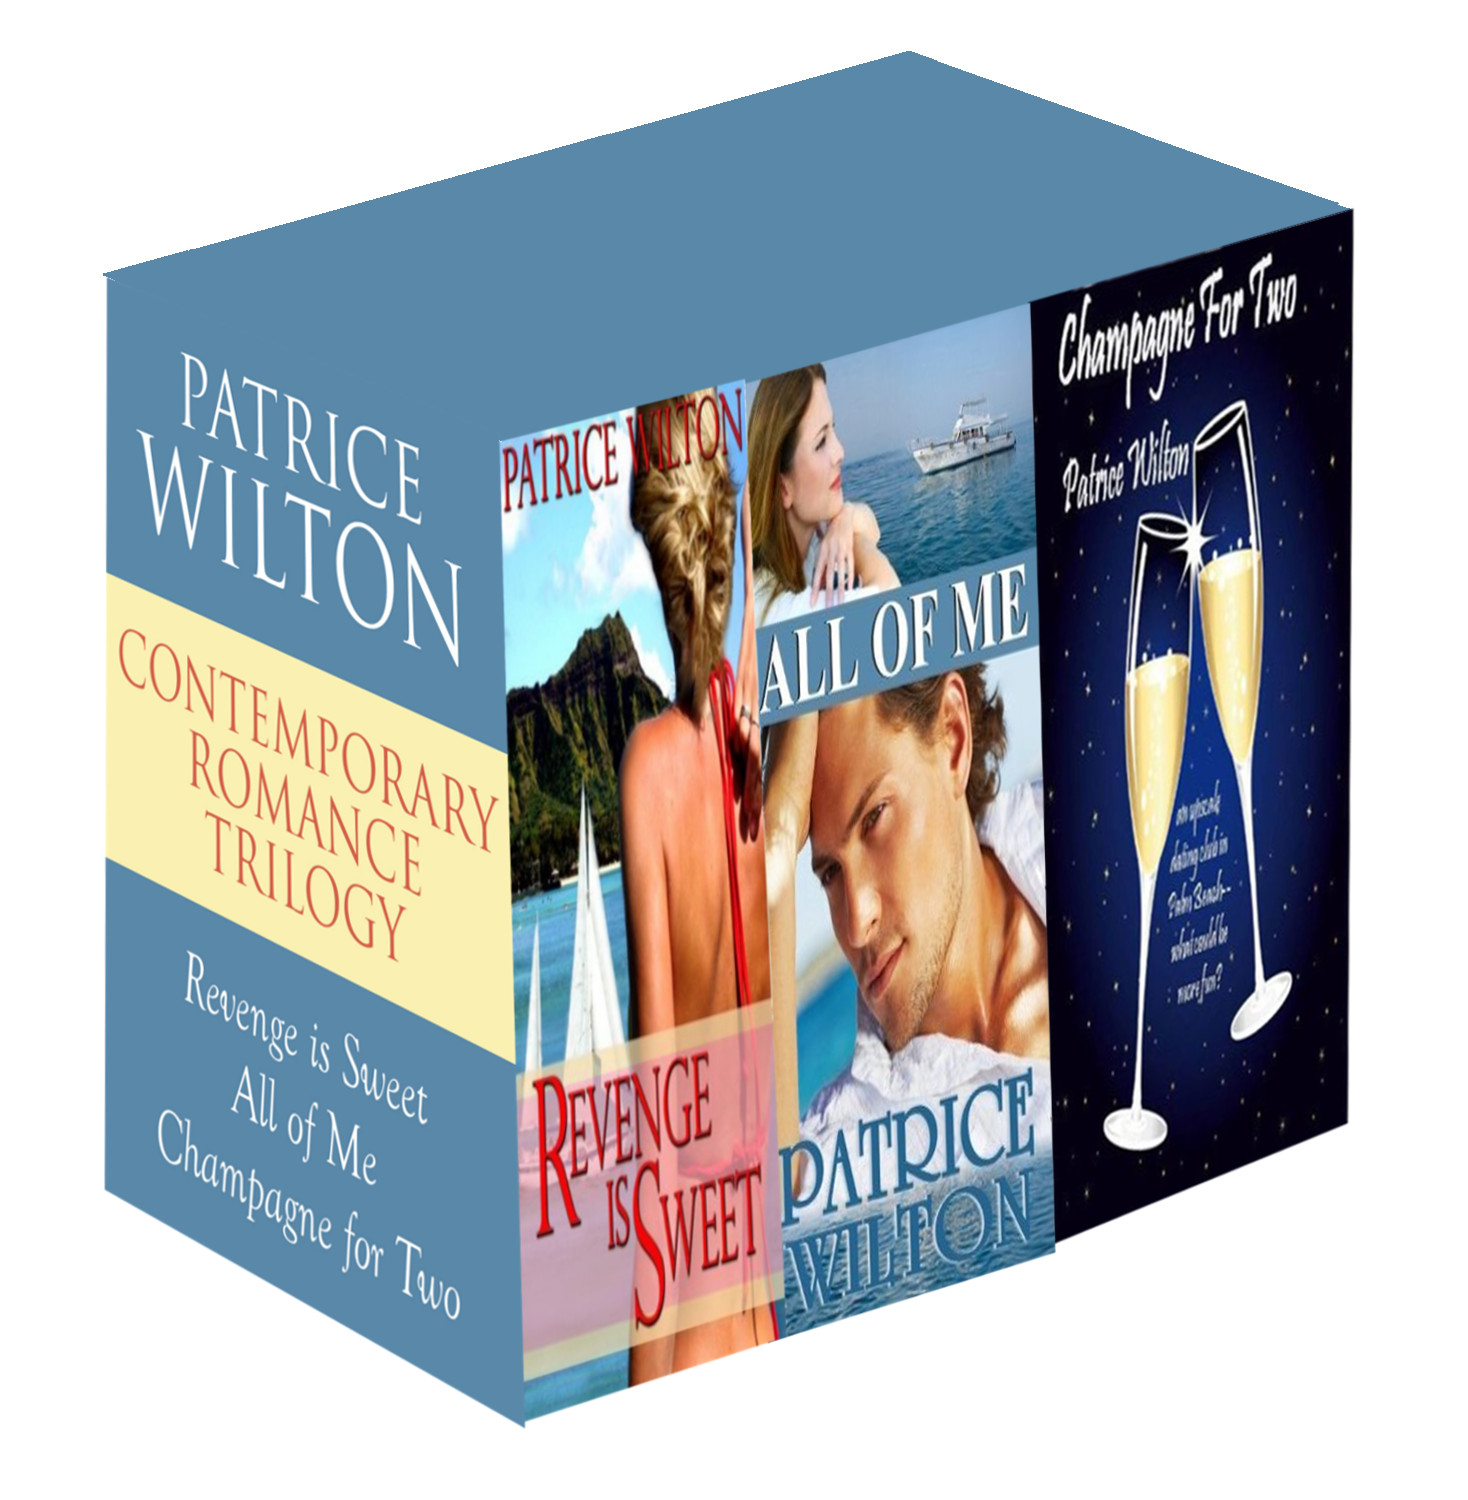 CONTEMPORARY ROMANCE TRILOGY